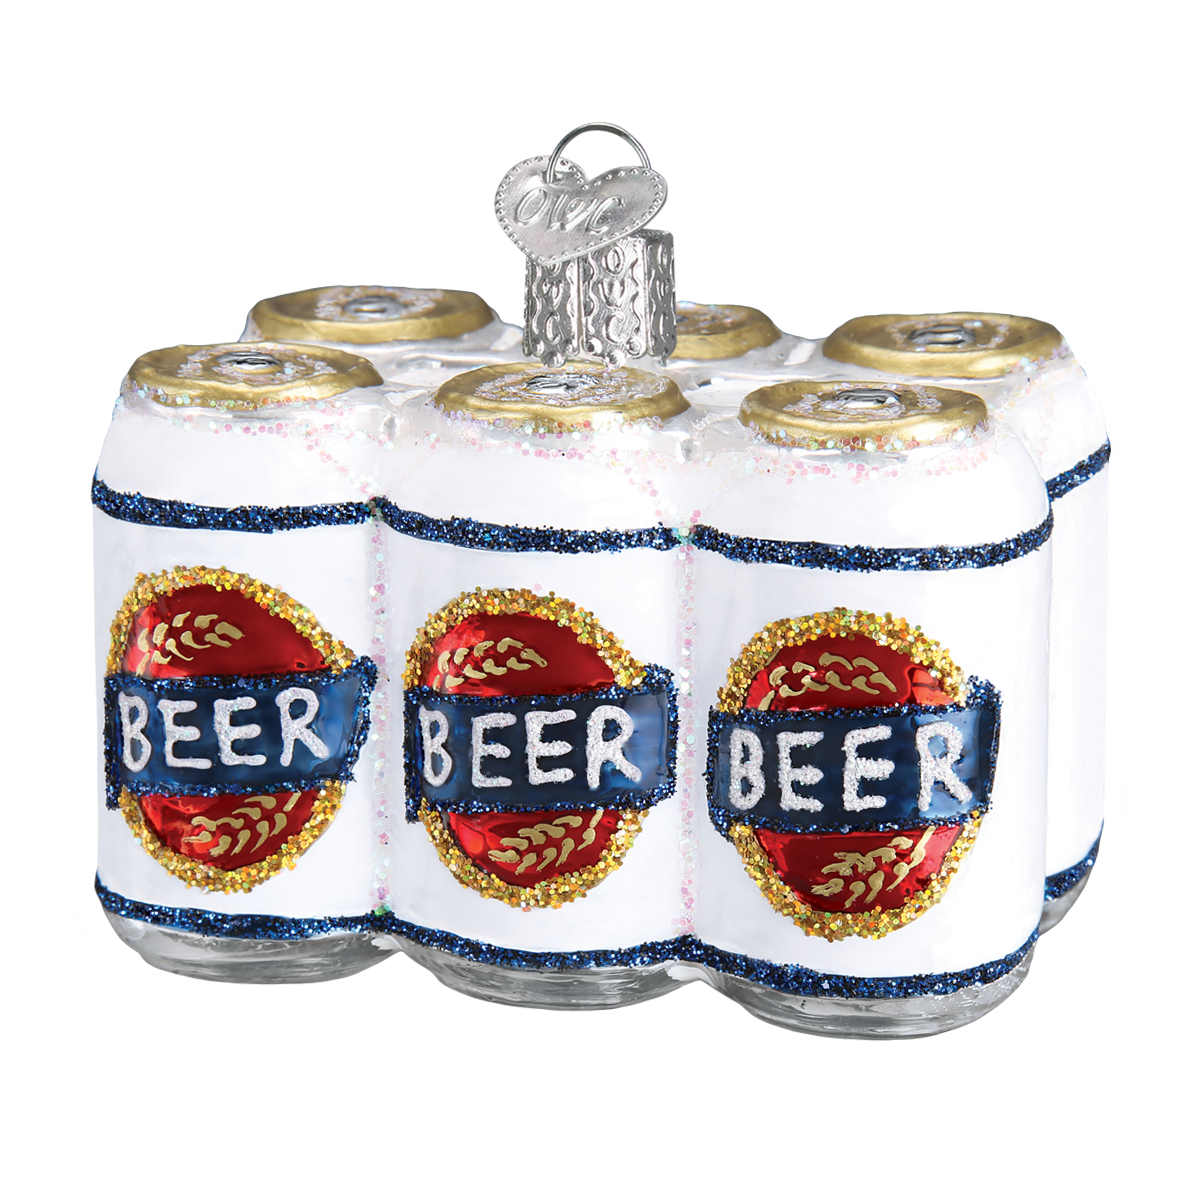 Six Pack of Beer Ornament, Glass Christmas Ornaments